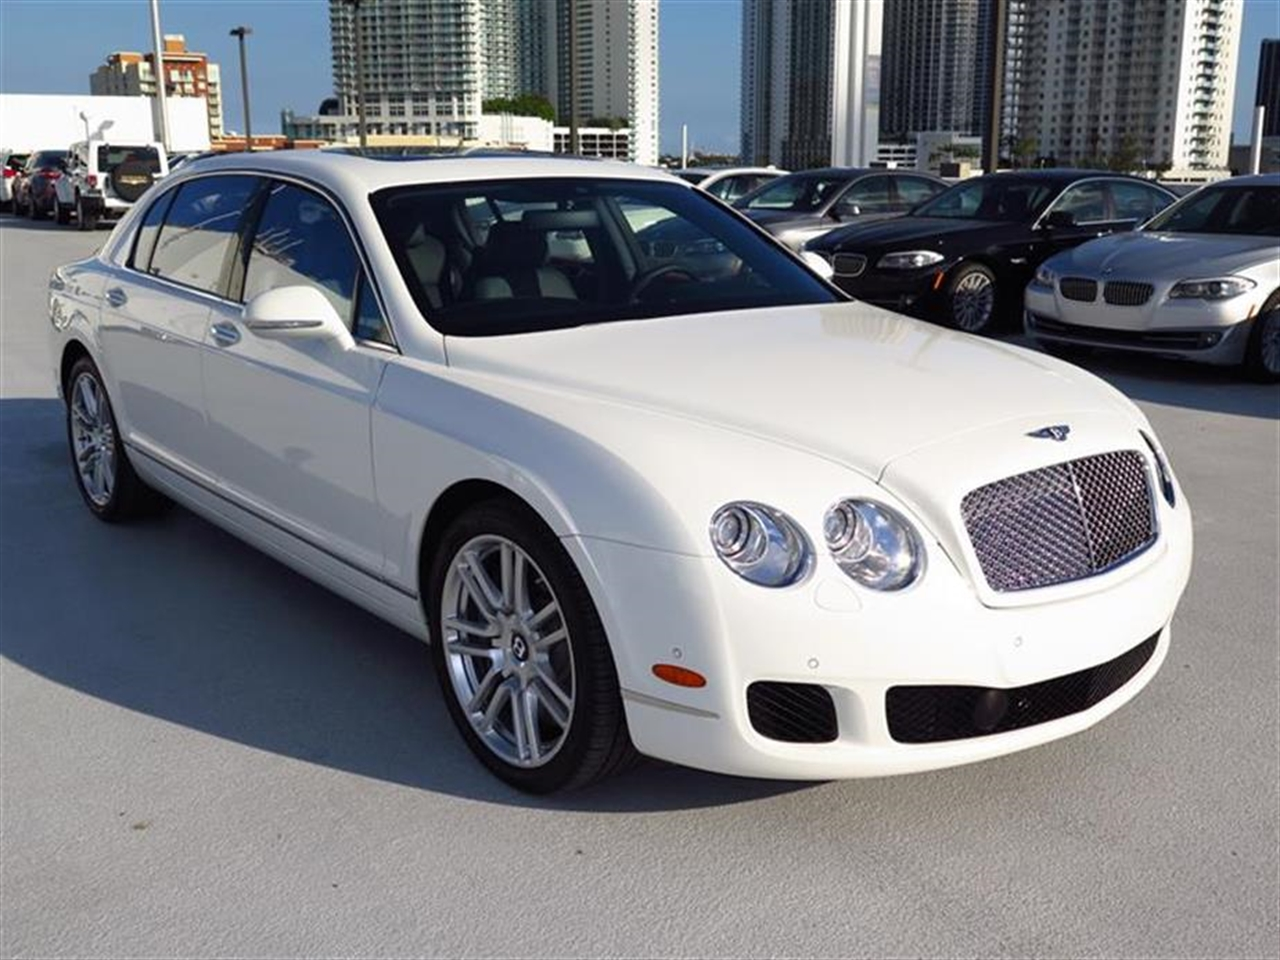 2013 BENTLEY CONTINENTAL FLYING SPUR 4dr Sdn 180 miles 4-spoke monotone leather trimmed steering w